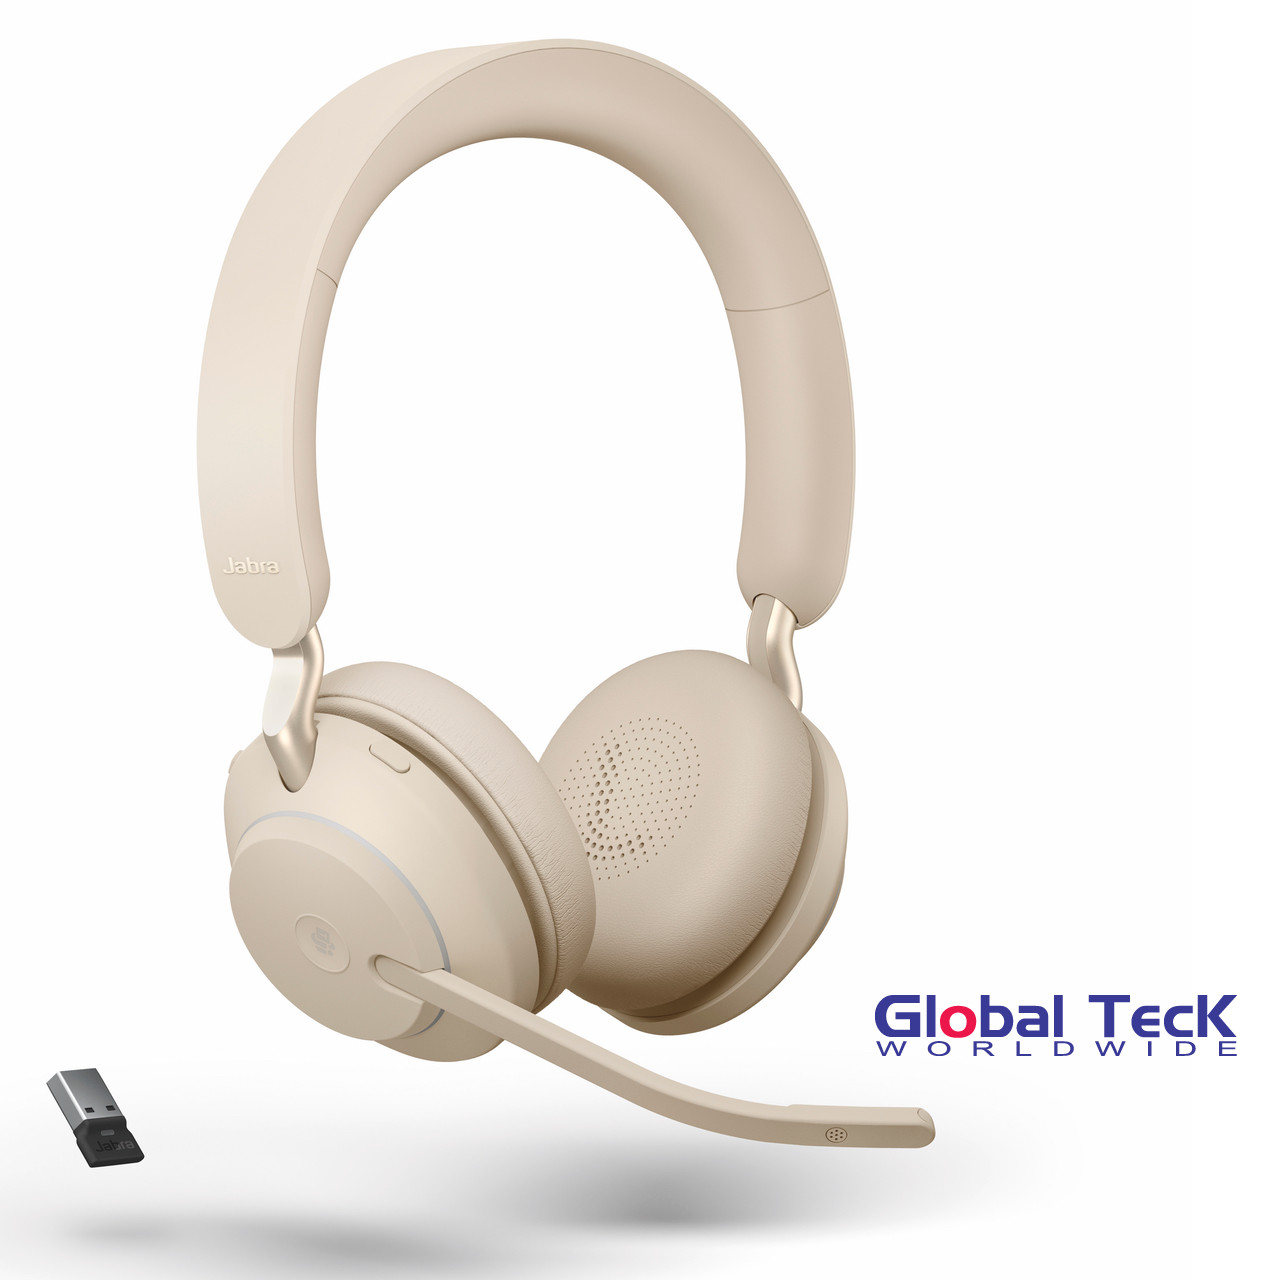 Jabra Evolve2 65 Stereo Wireless Headset Beige Ms Version Includes Usb Bluetooth Dongle Compatible With Windows Pc Mac Smartphone Streaming Music Skype Ip Communications 26599 999 998